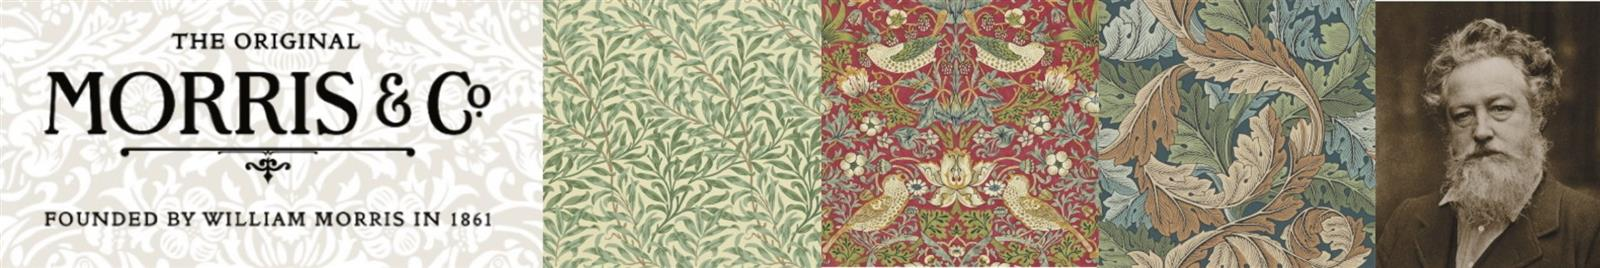 Morris and Co Wallpaper-Rosehip